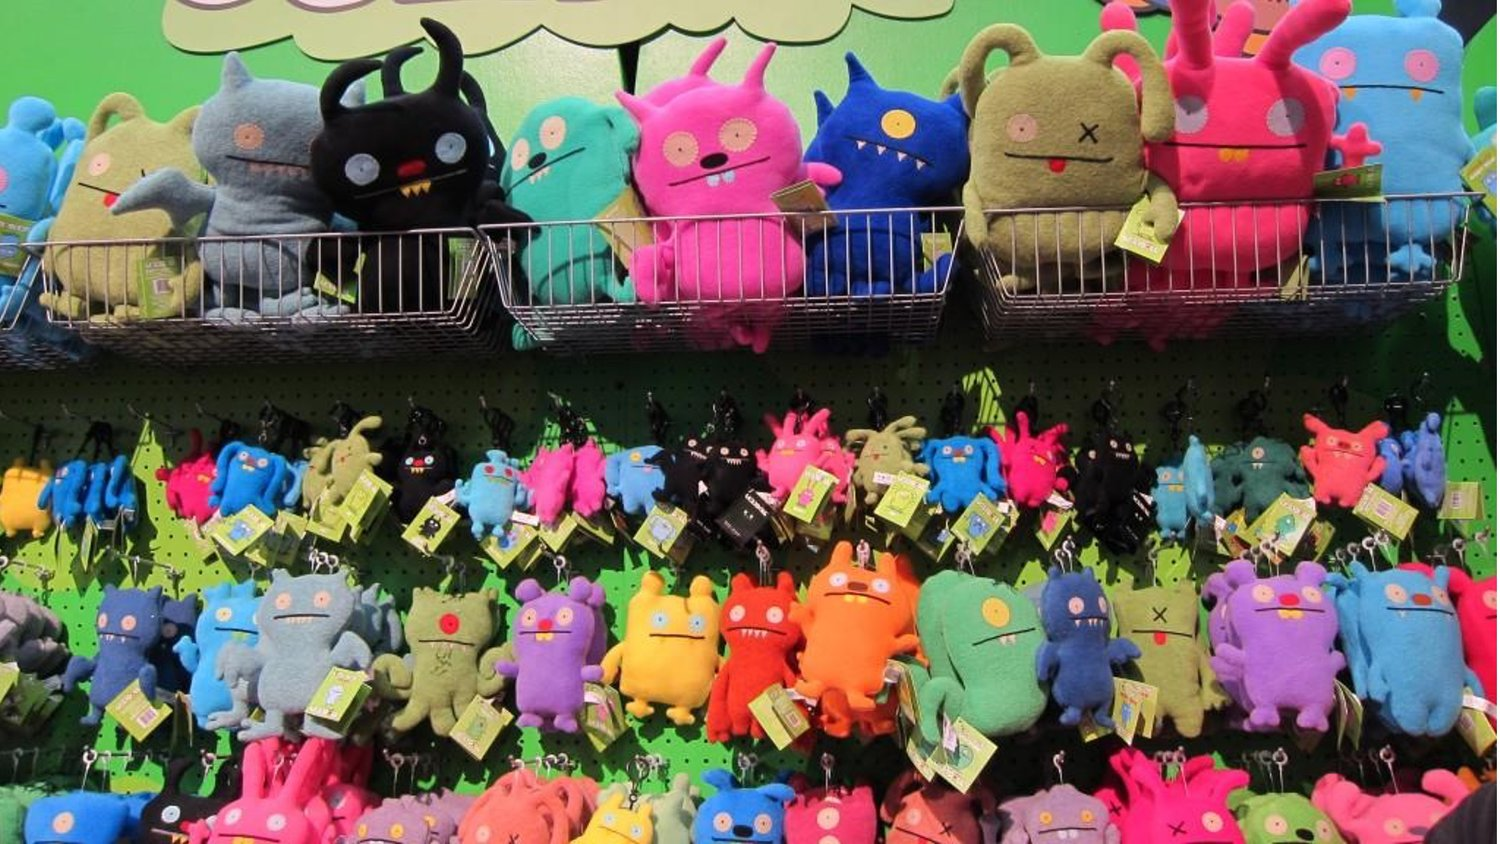 Robert Rodriguez Is Set to Direct an Animated Film Based on the Toy Line UGLY DOLLS